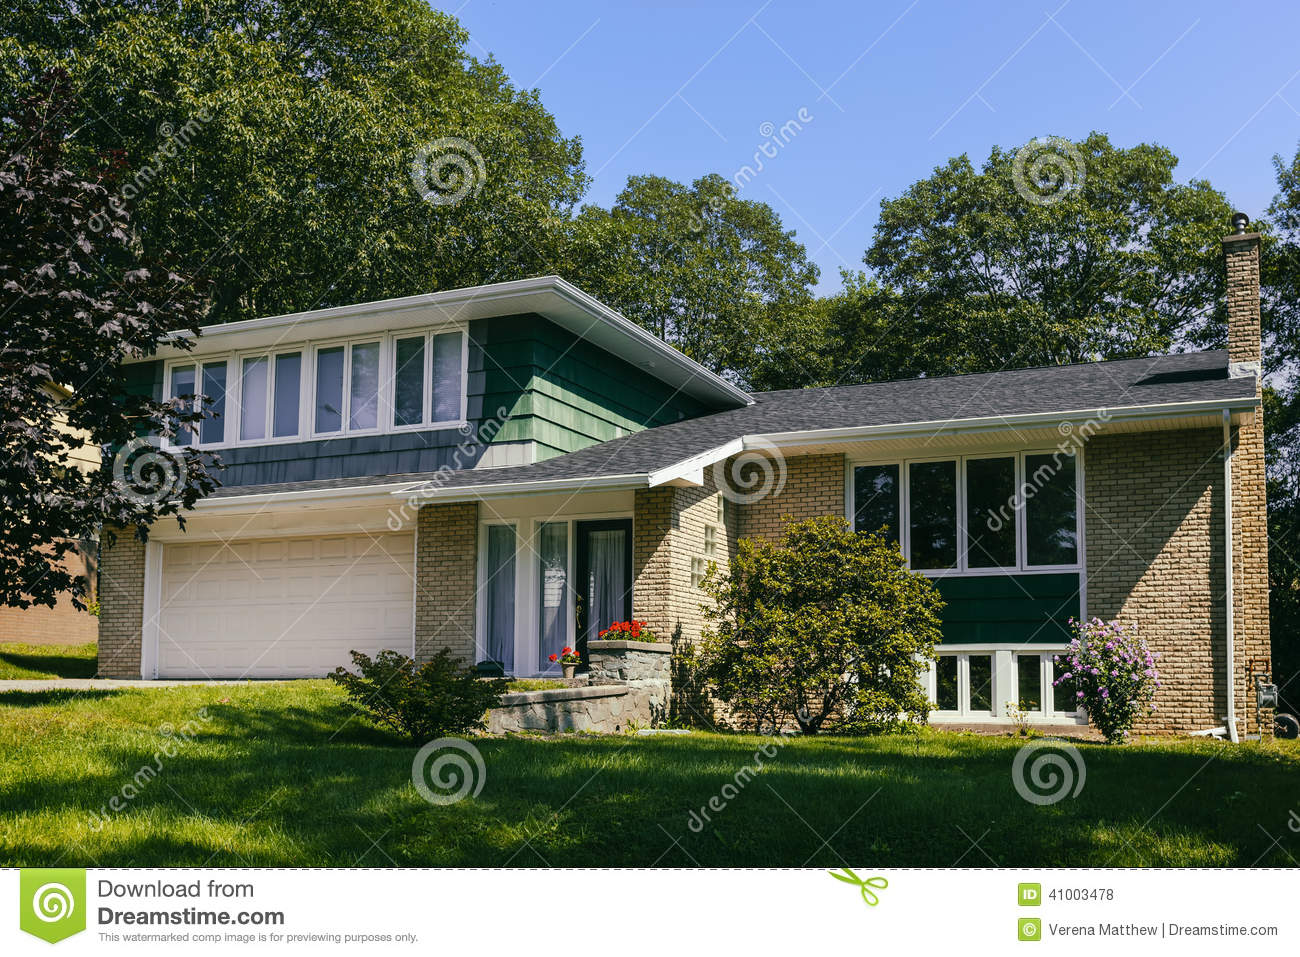 Seventies House Stock Photo Image 41003478